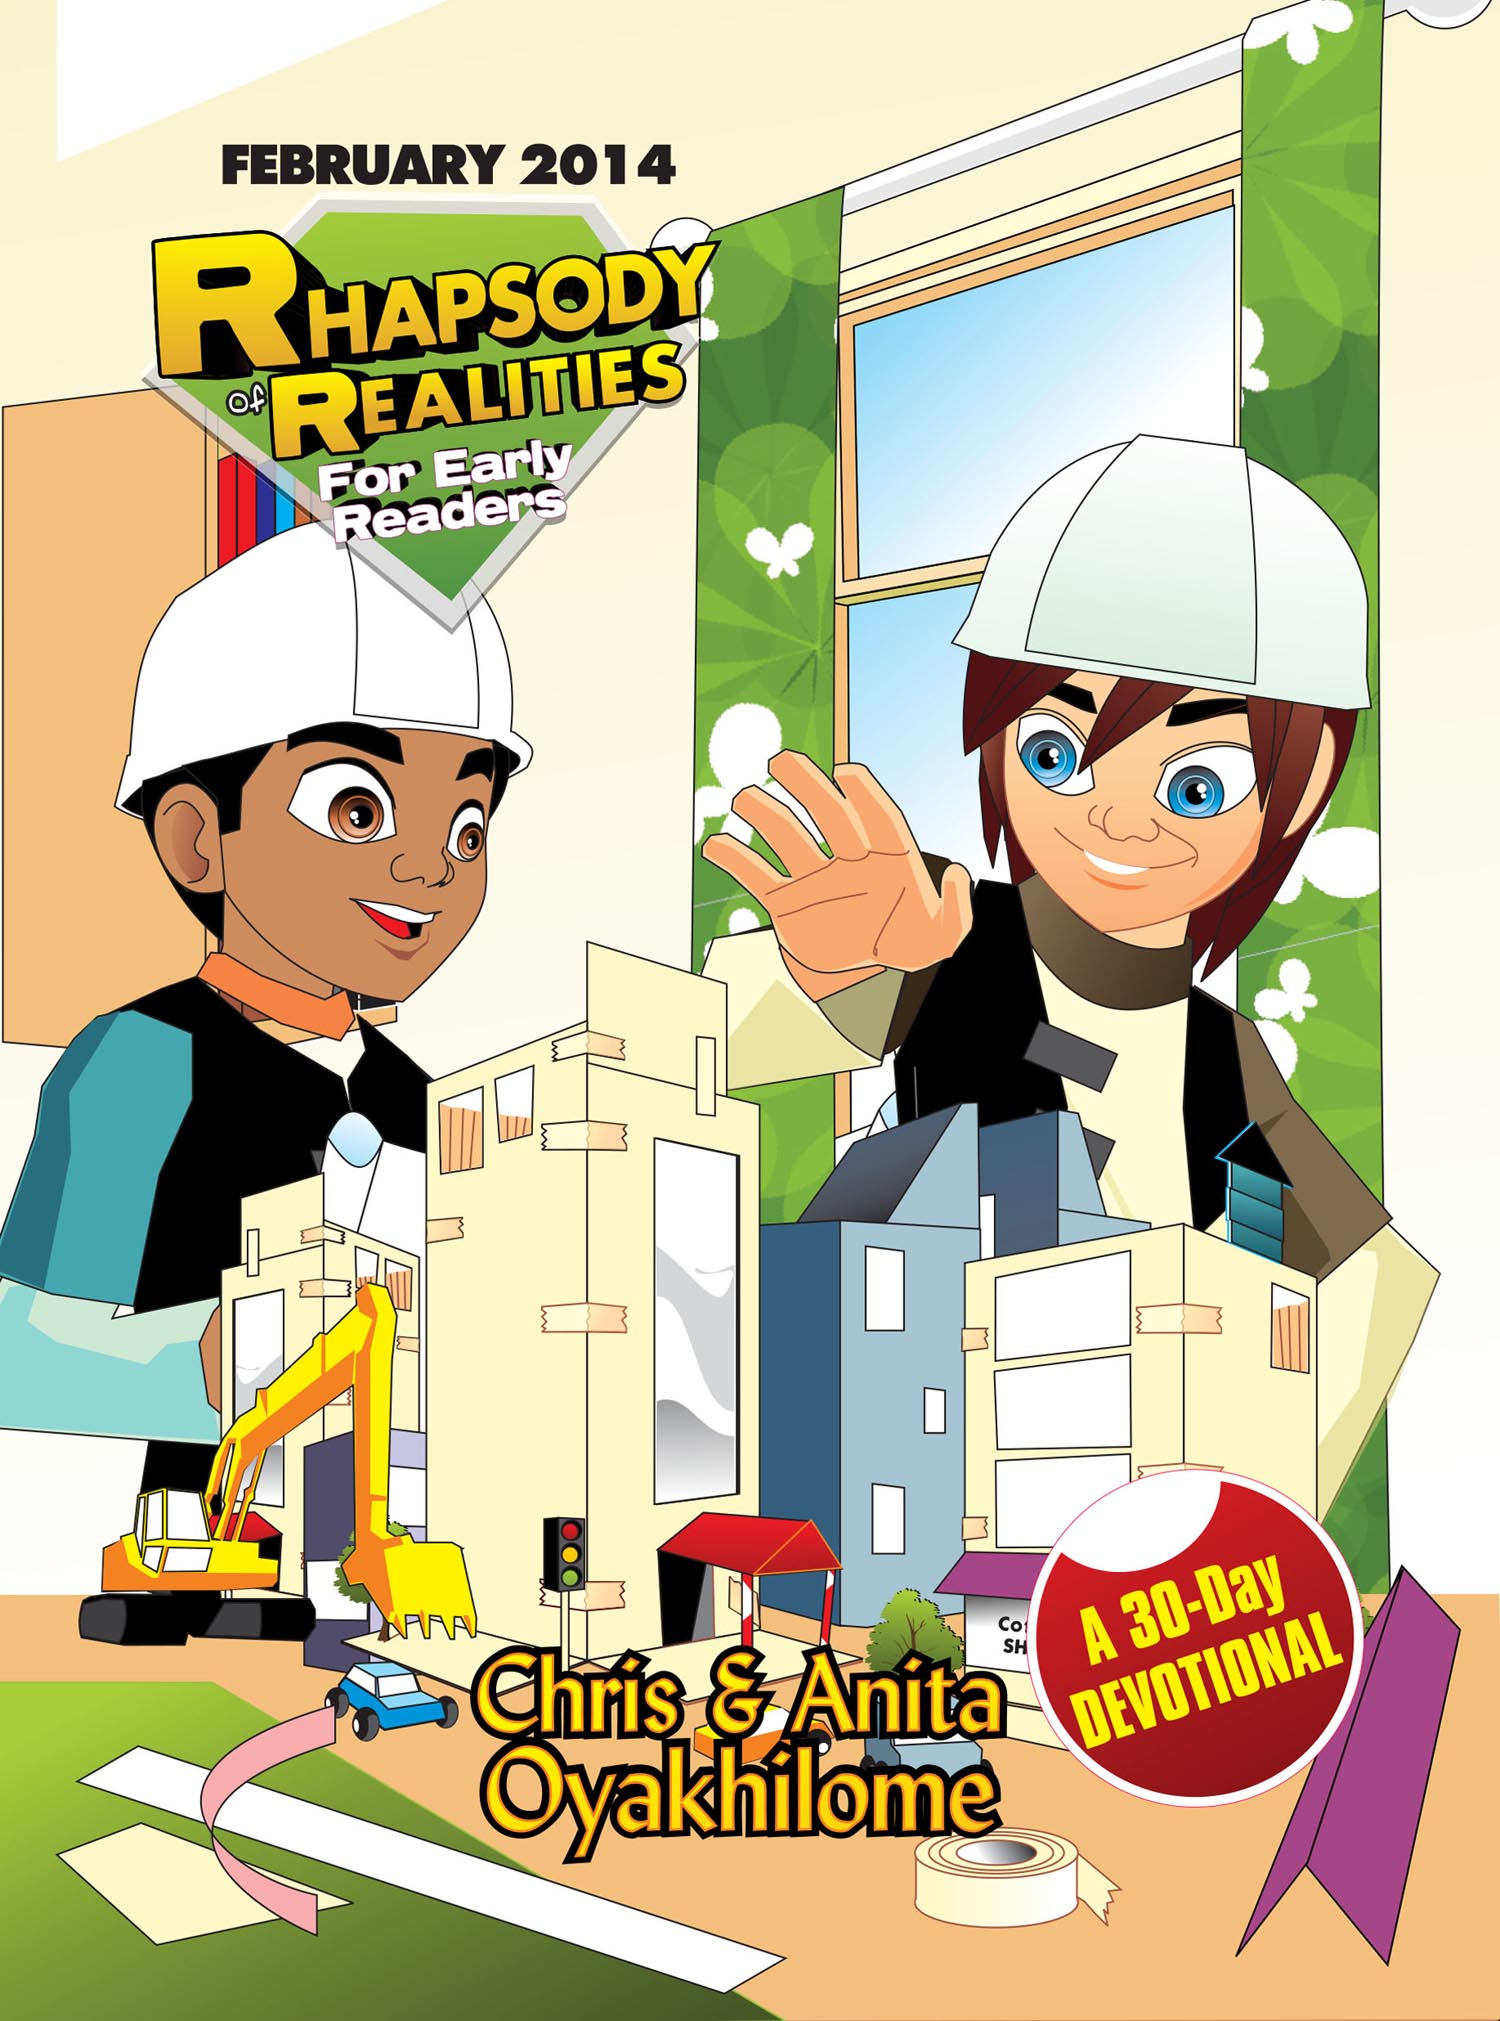 Pastor Chris and Anita Oyakhilome - Rhapsody of Realities for Early Readers – February 2014 Edition